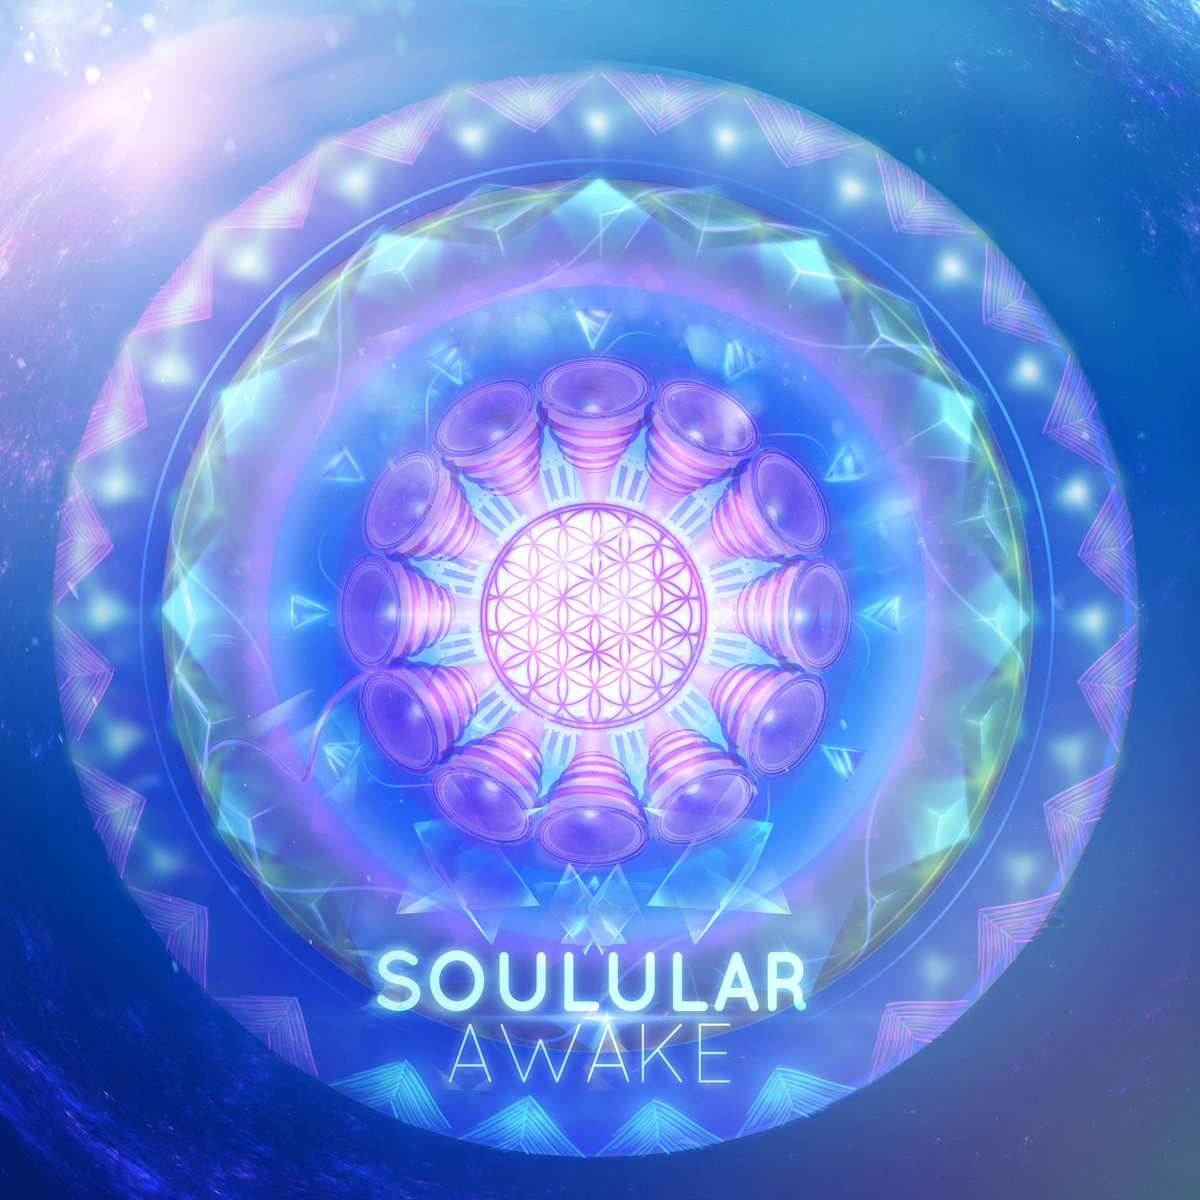 Soulular - I Am @ 'AWAKE' album (los angeles, chill)